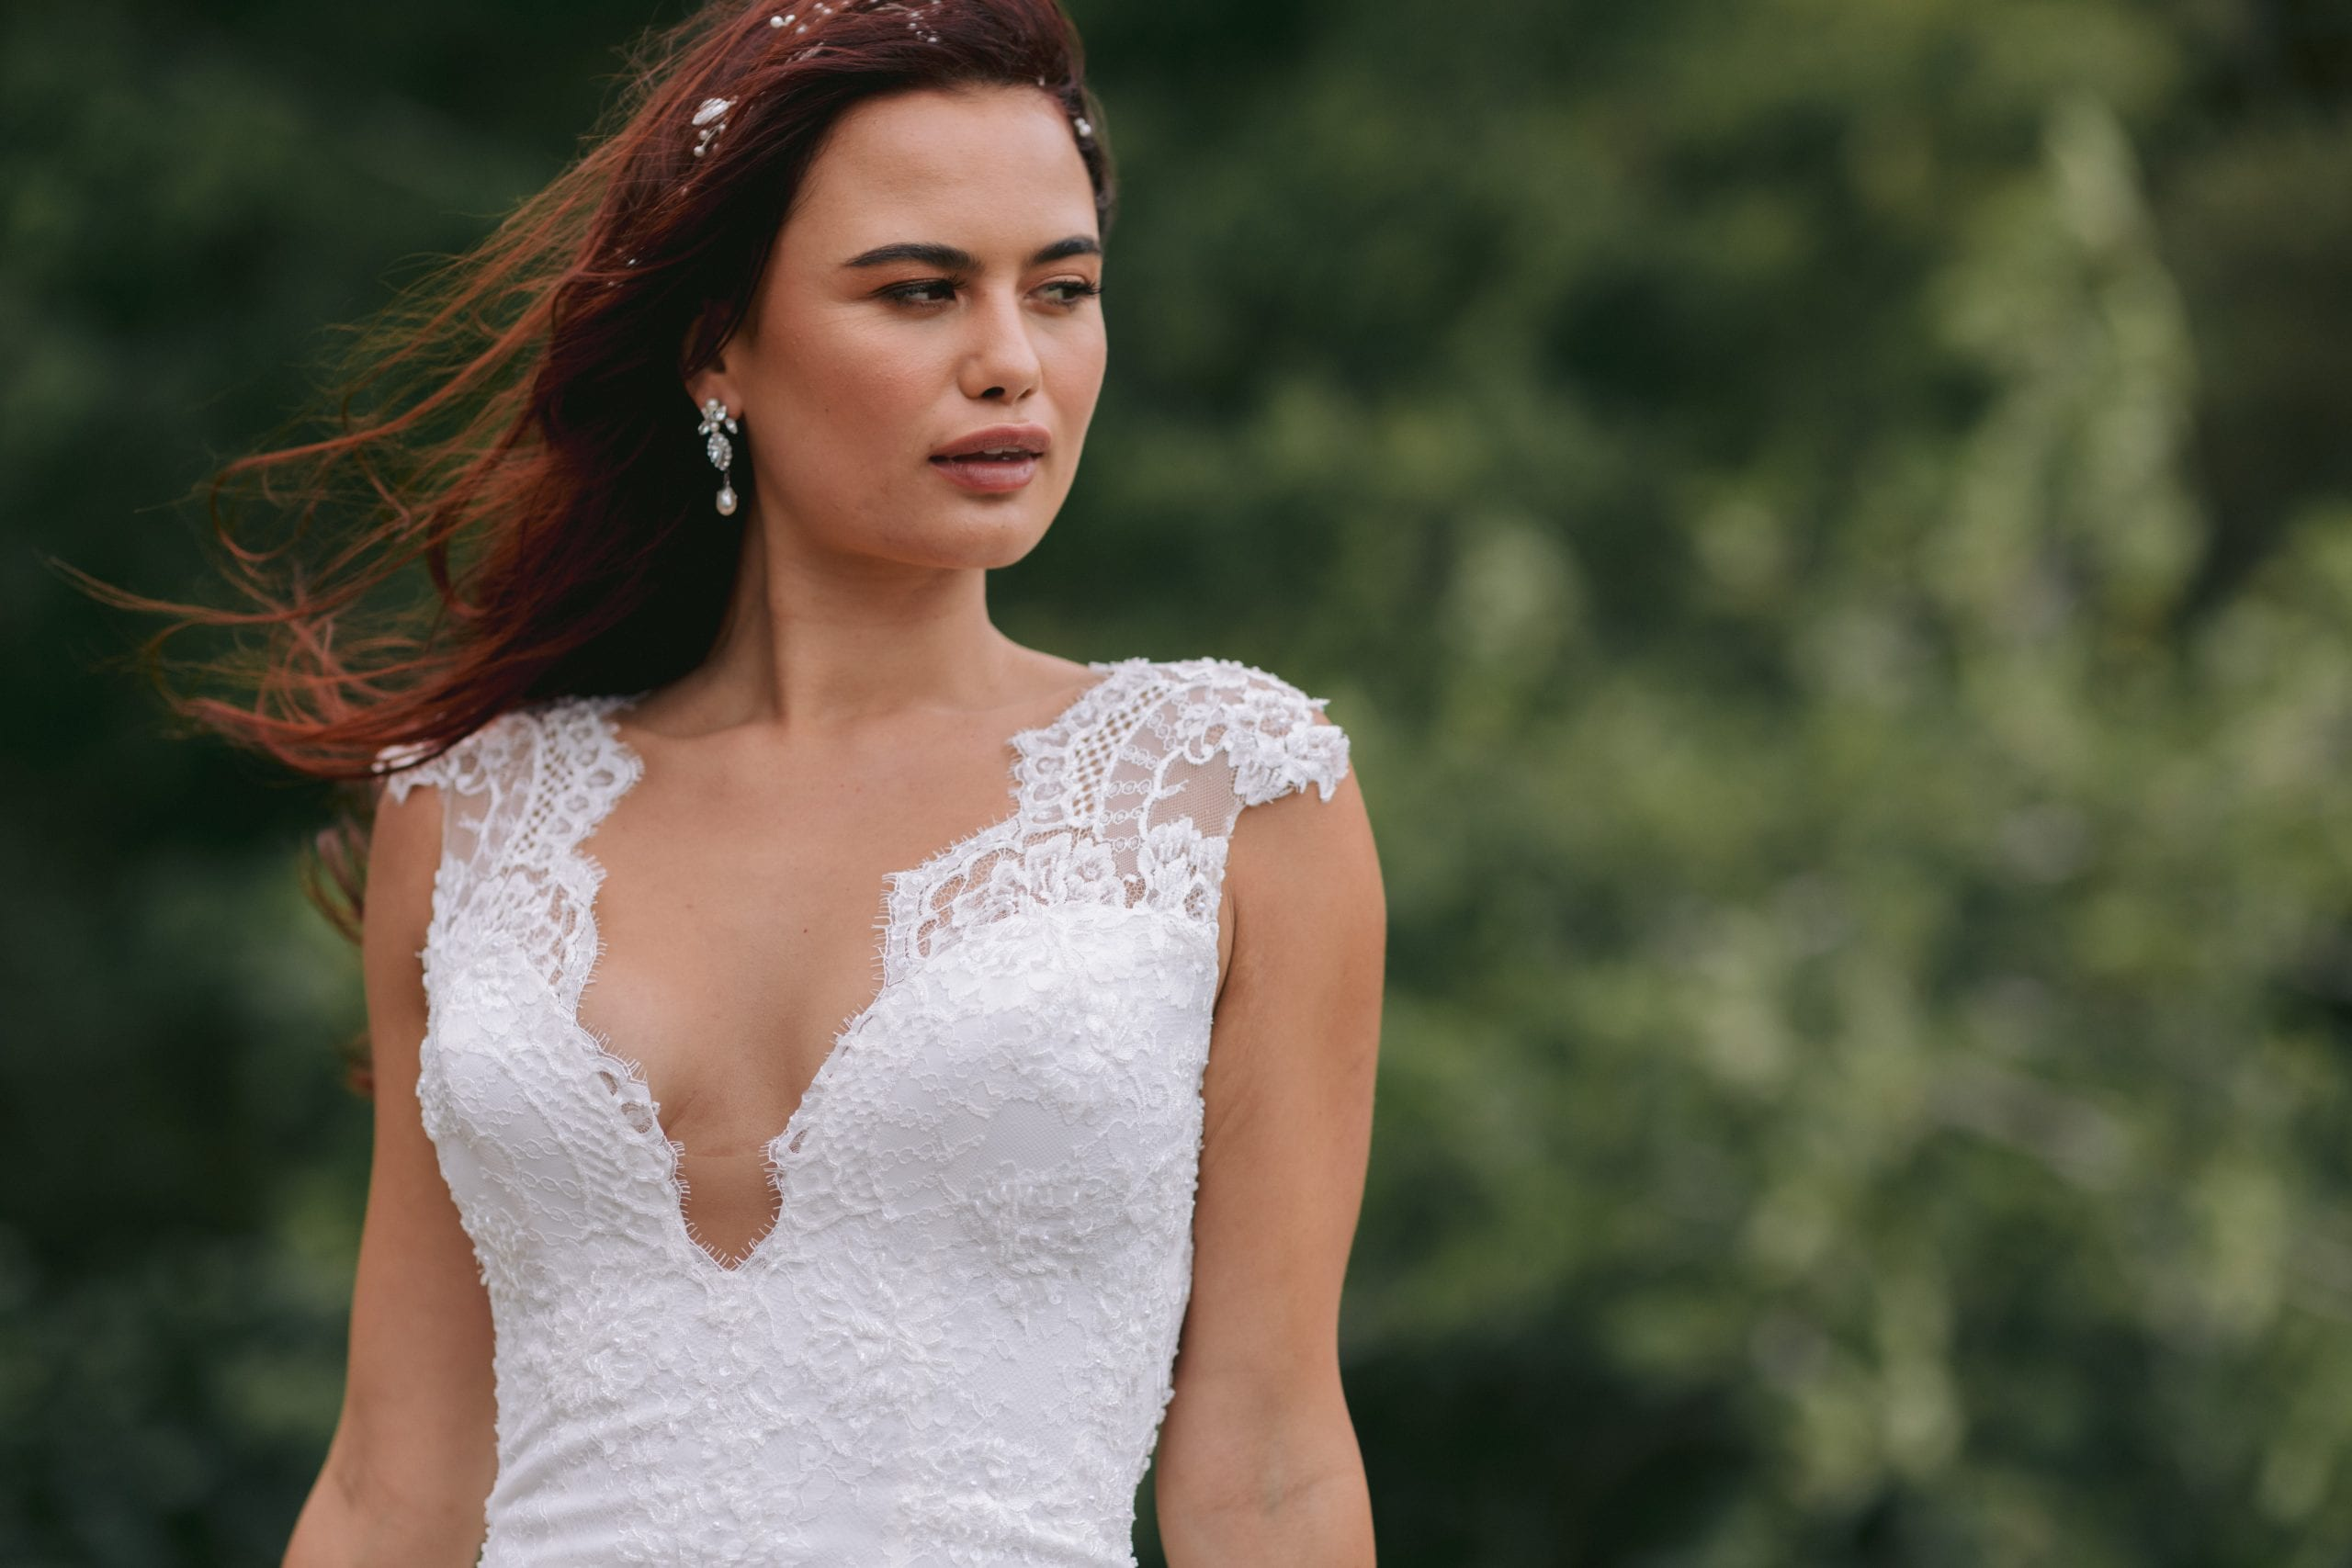 Fallyn Wedding gown from Vinka Design - This wedding dress is a timeless classic. Dramatic scallop lace and deep V-shaped neckline with beautiful low back and mini cap sleeves. This gown is cut in a fit-and-flare design with a side split. Model wearing gown showing scalloped neckline.